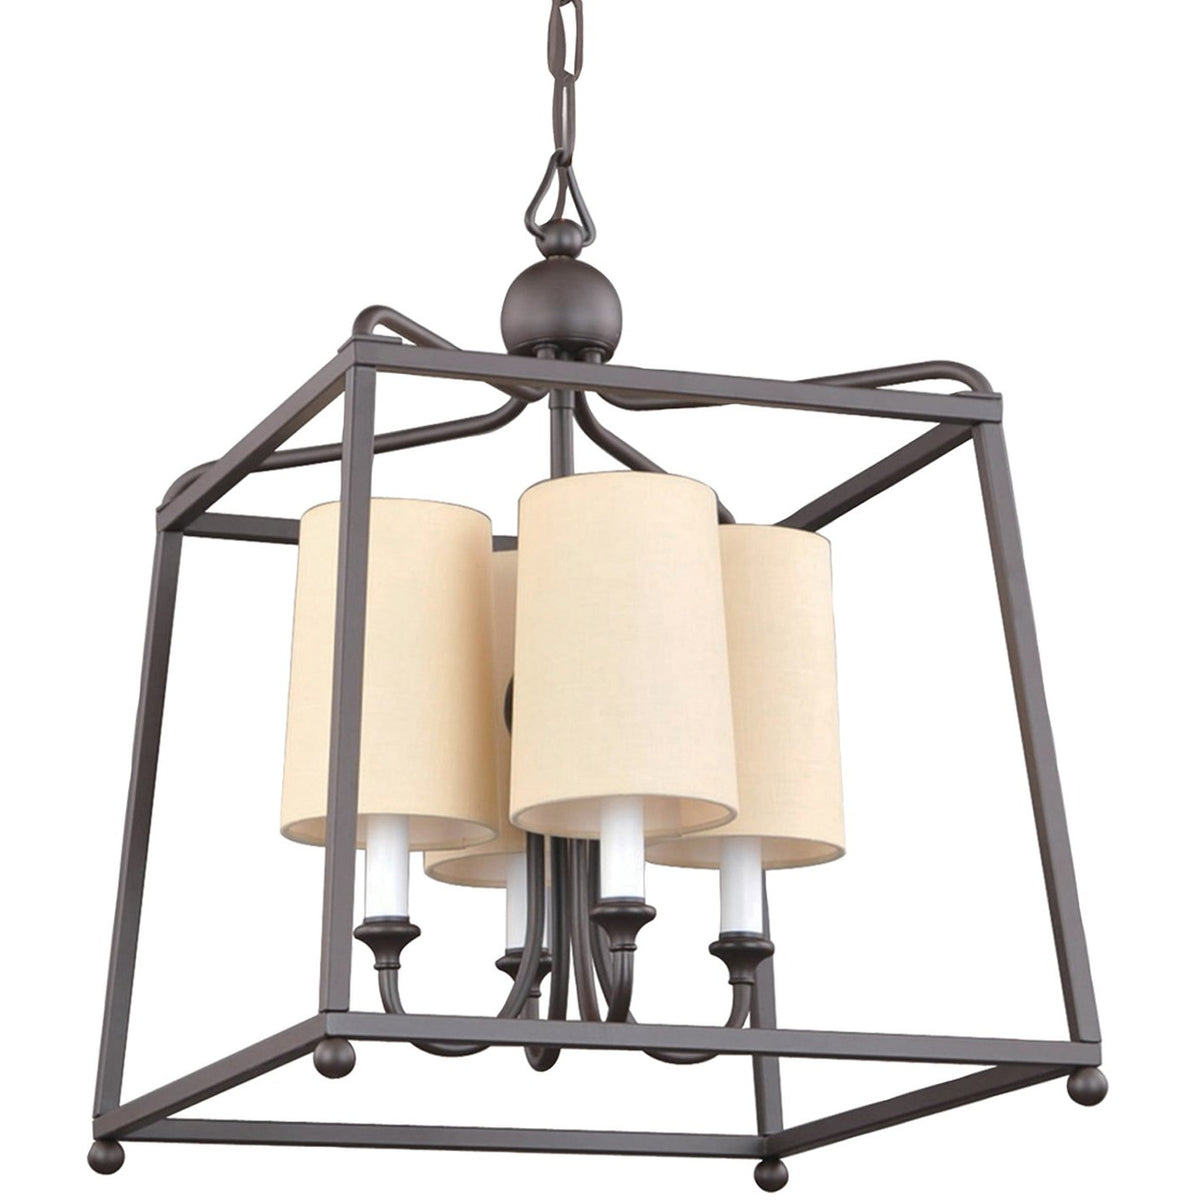 Crystorama - 2245-DB - Four Light Chandelier - Sylvan - Dark Bronze